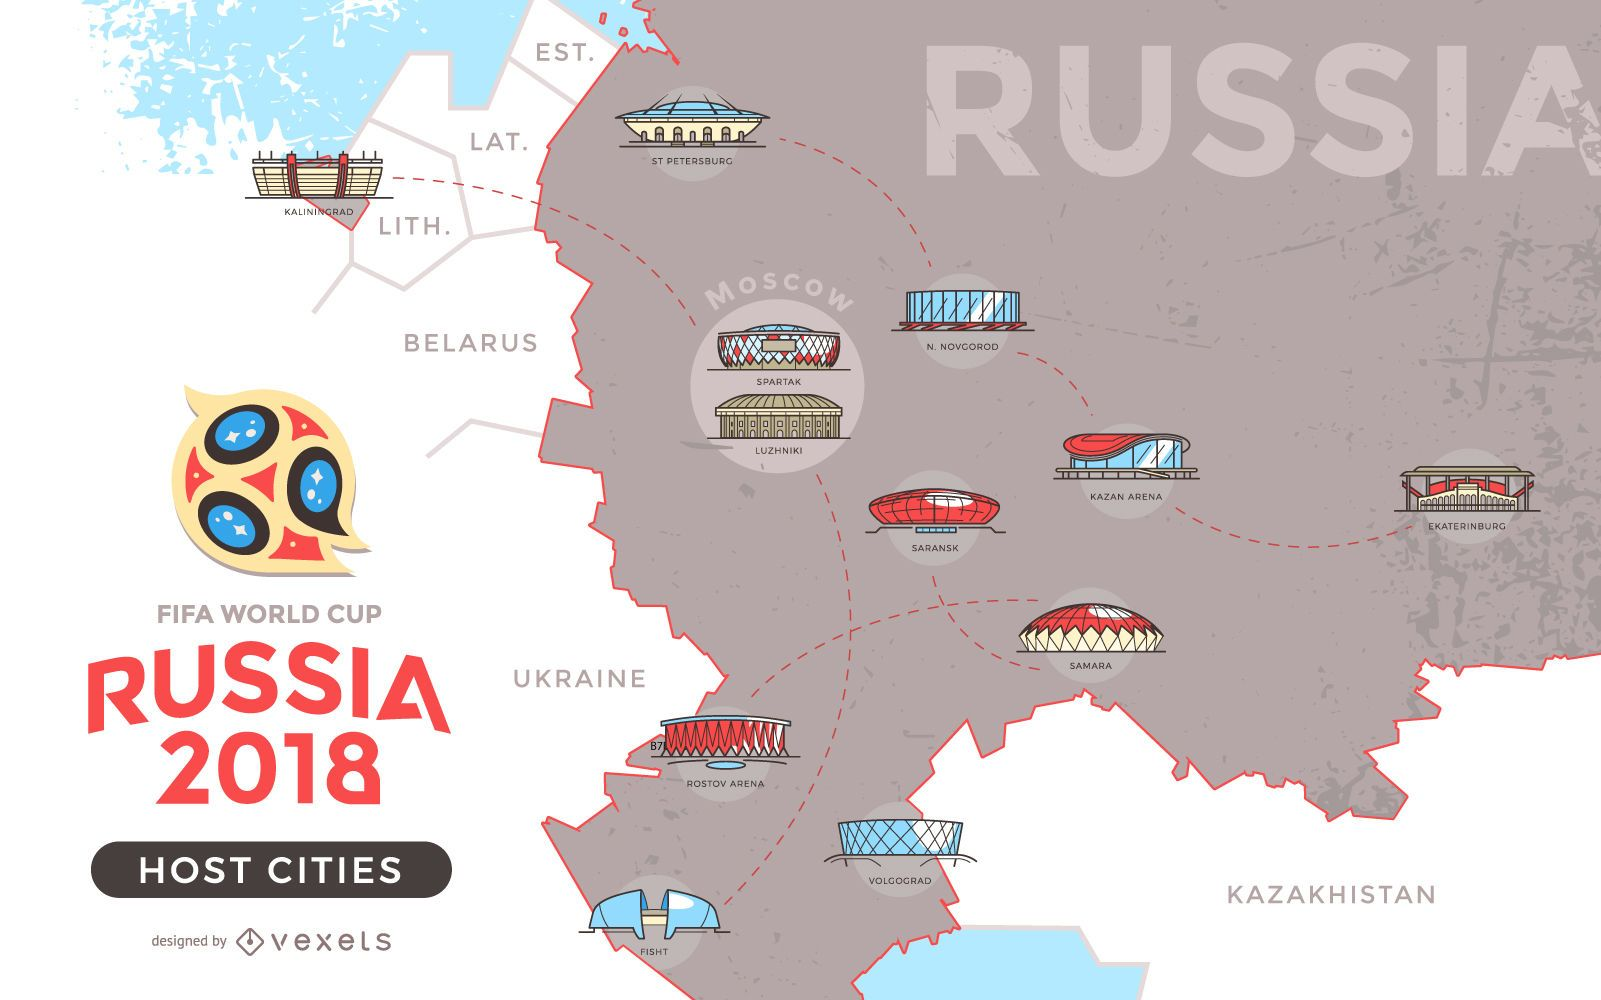 Russia Host Cities Map